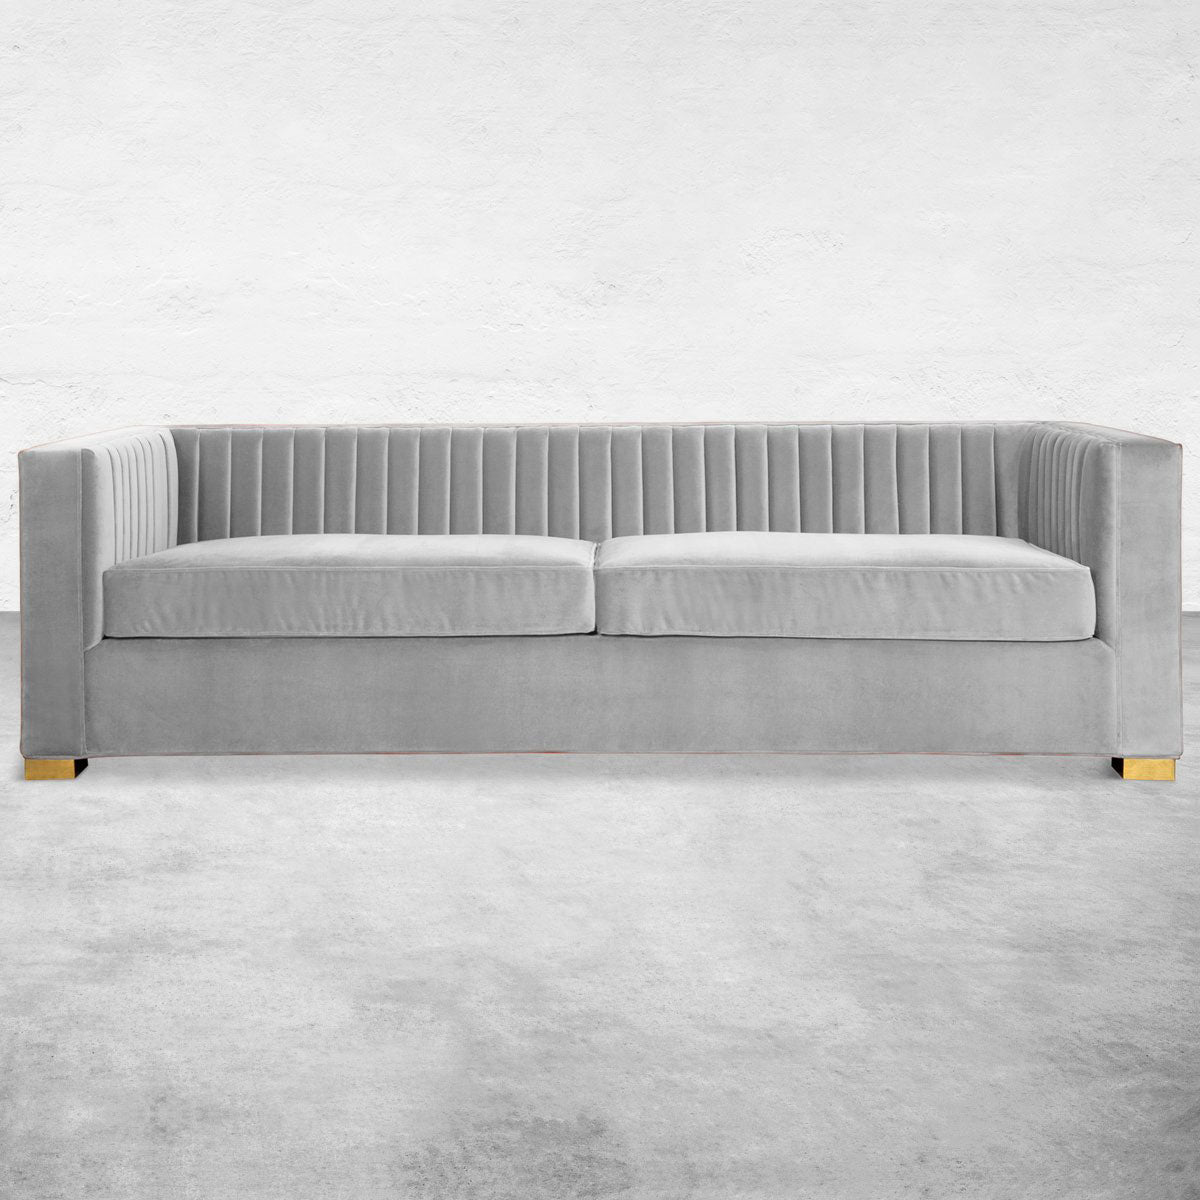 Acapulco Sofa in Velvet